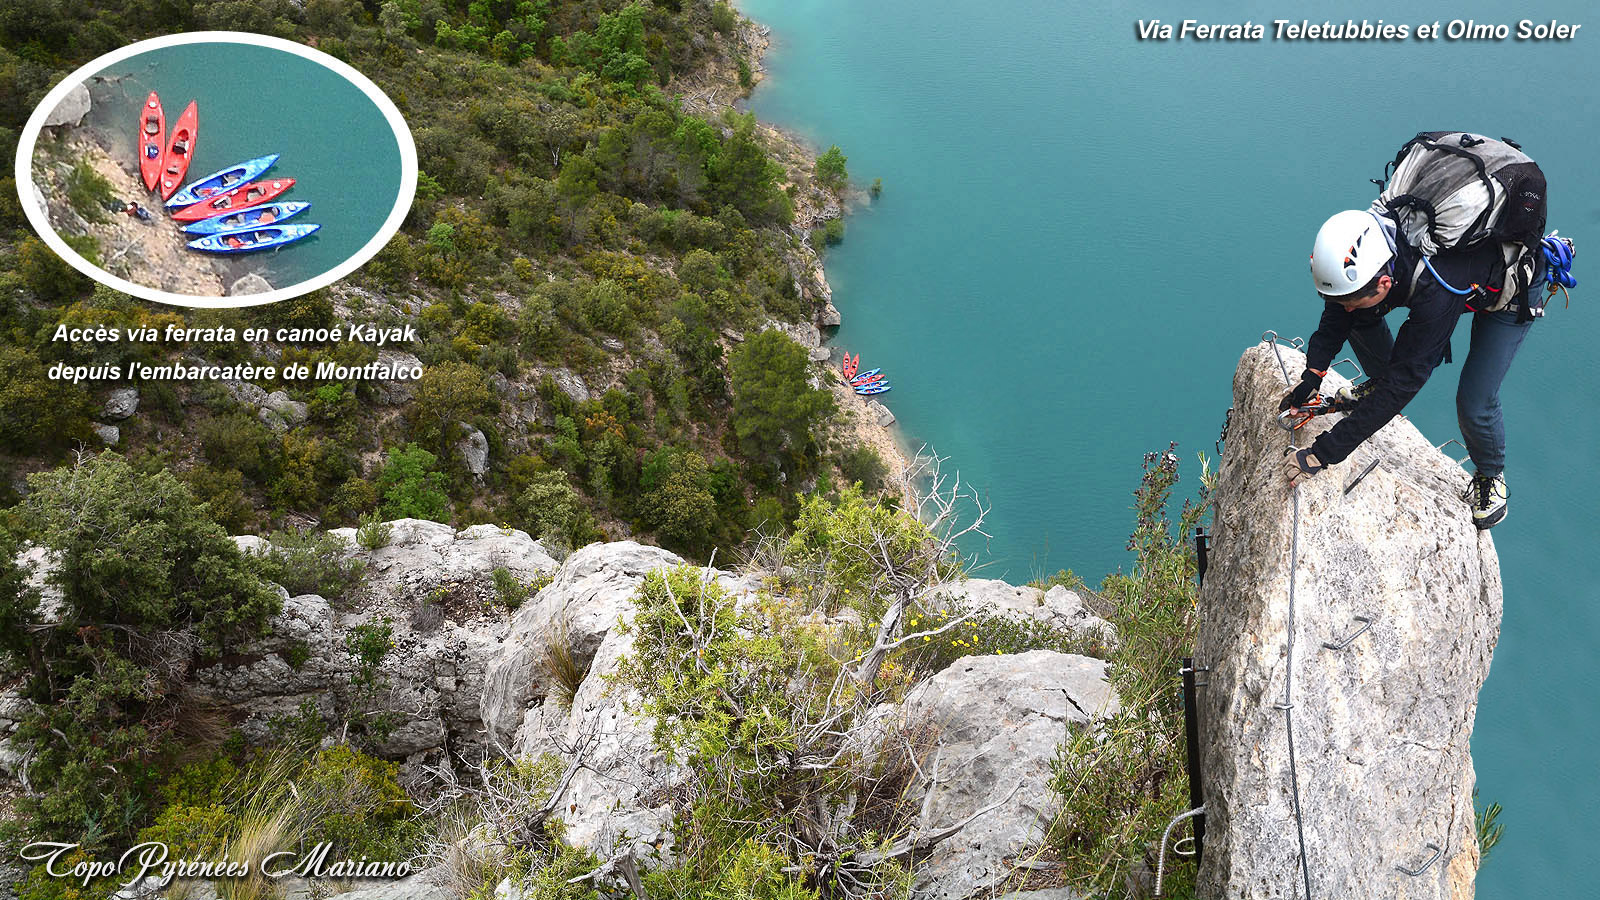 Via Ferrata Teletubbies/Olmo-Soler